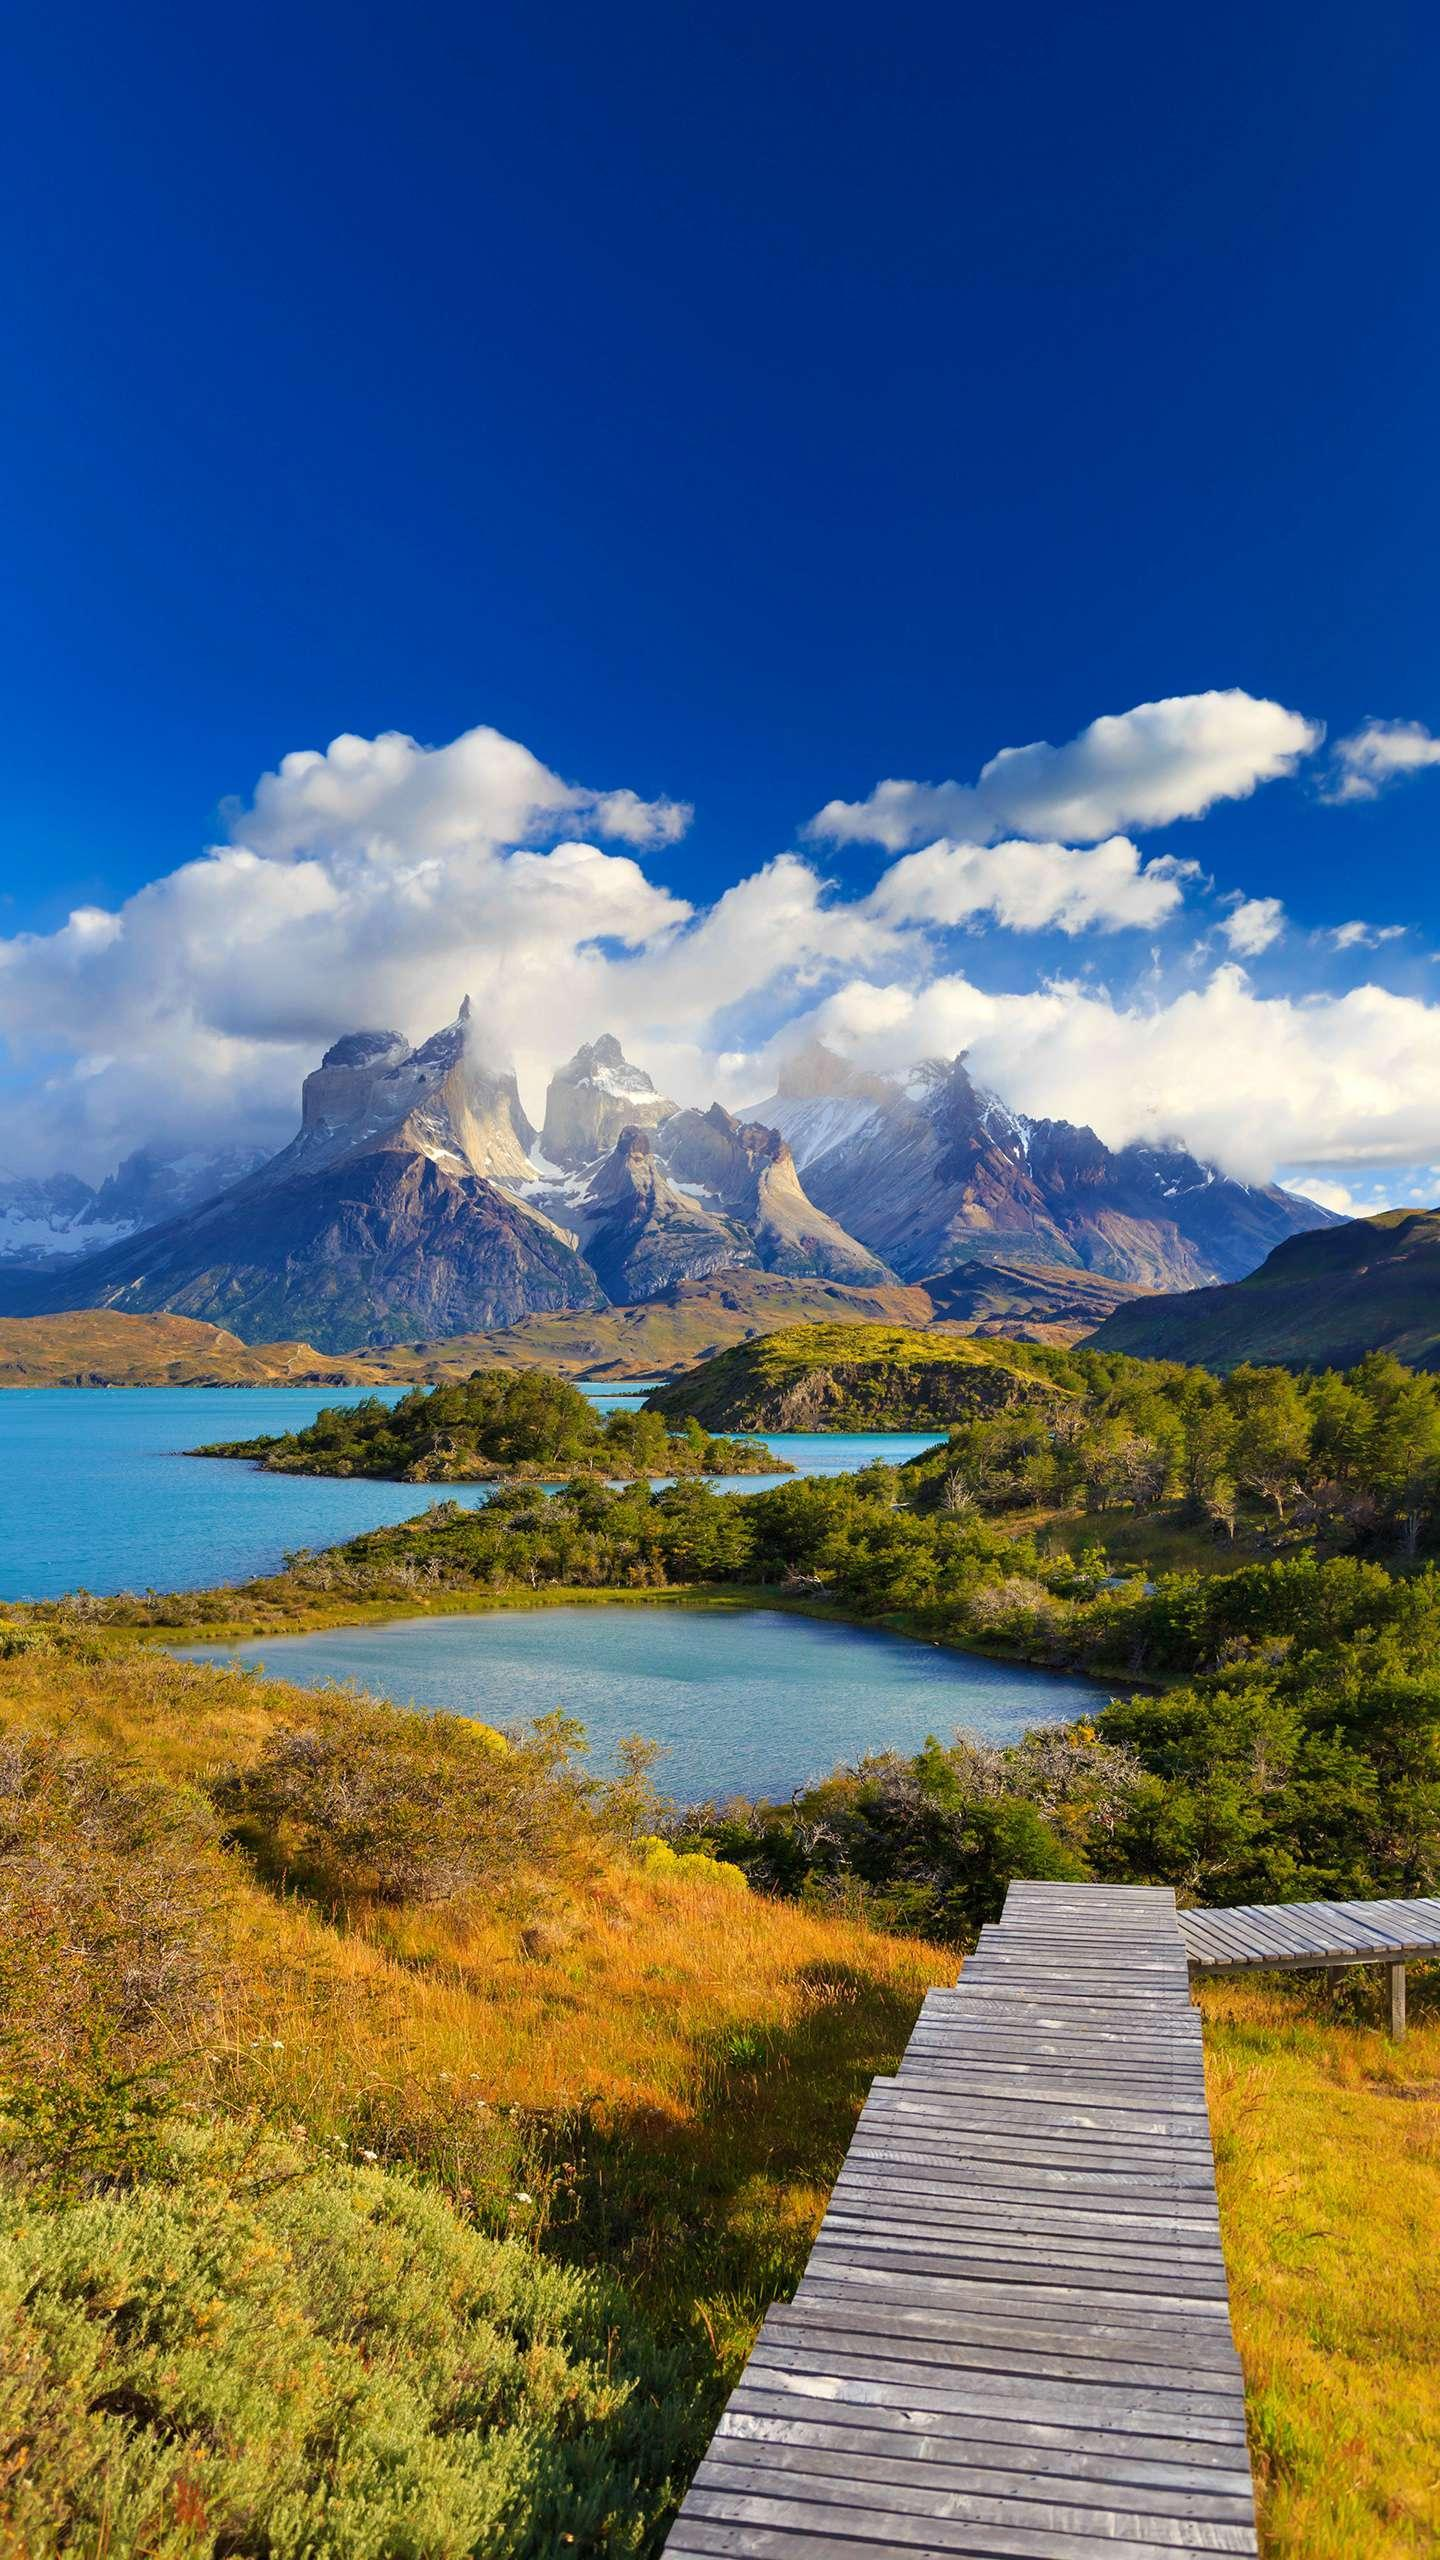 Chile - Torres del Paine National Park. Its beautiful lakes, numerous glaciers and towering granite peaks are world famous.